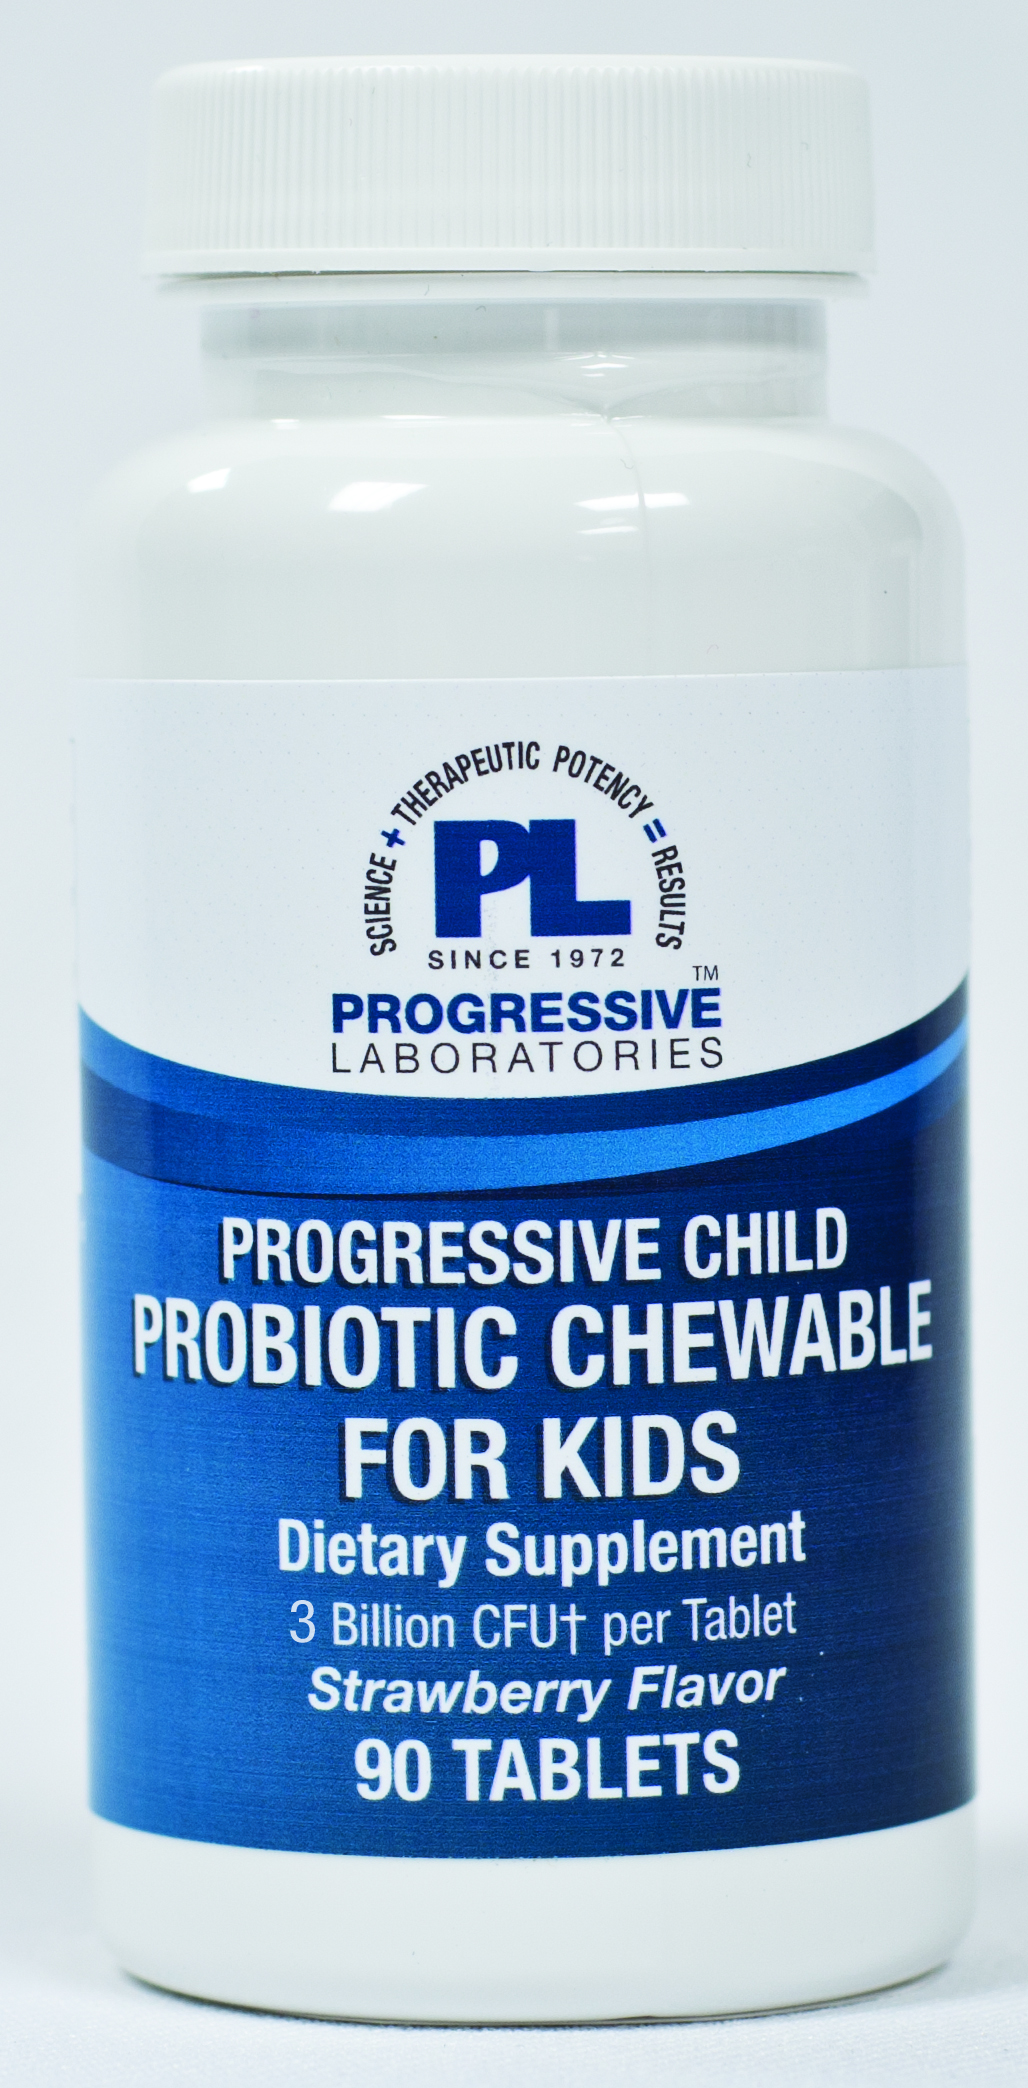 PROBIOTIC CHEWABLE FOR KIDS